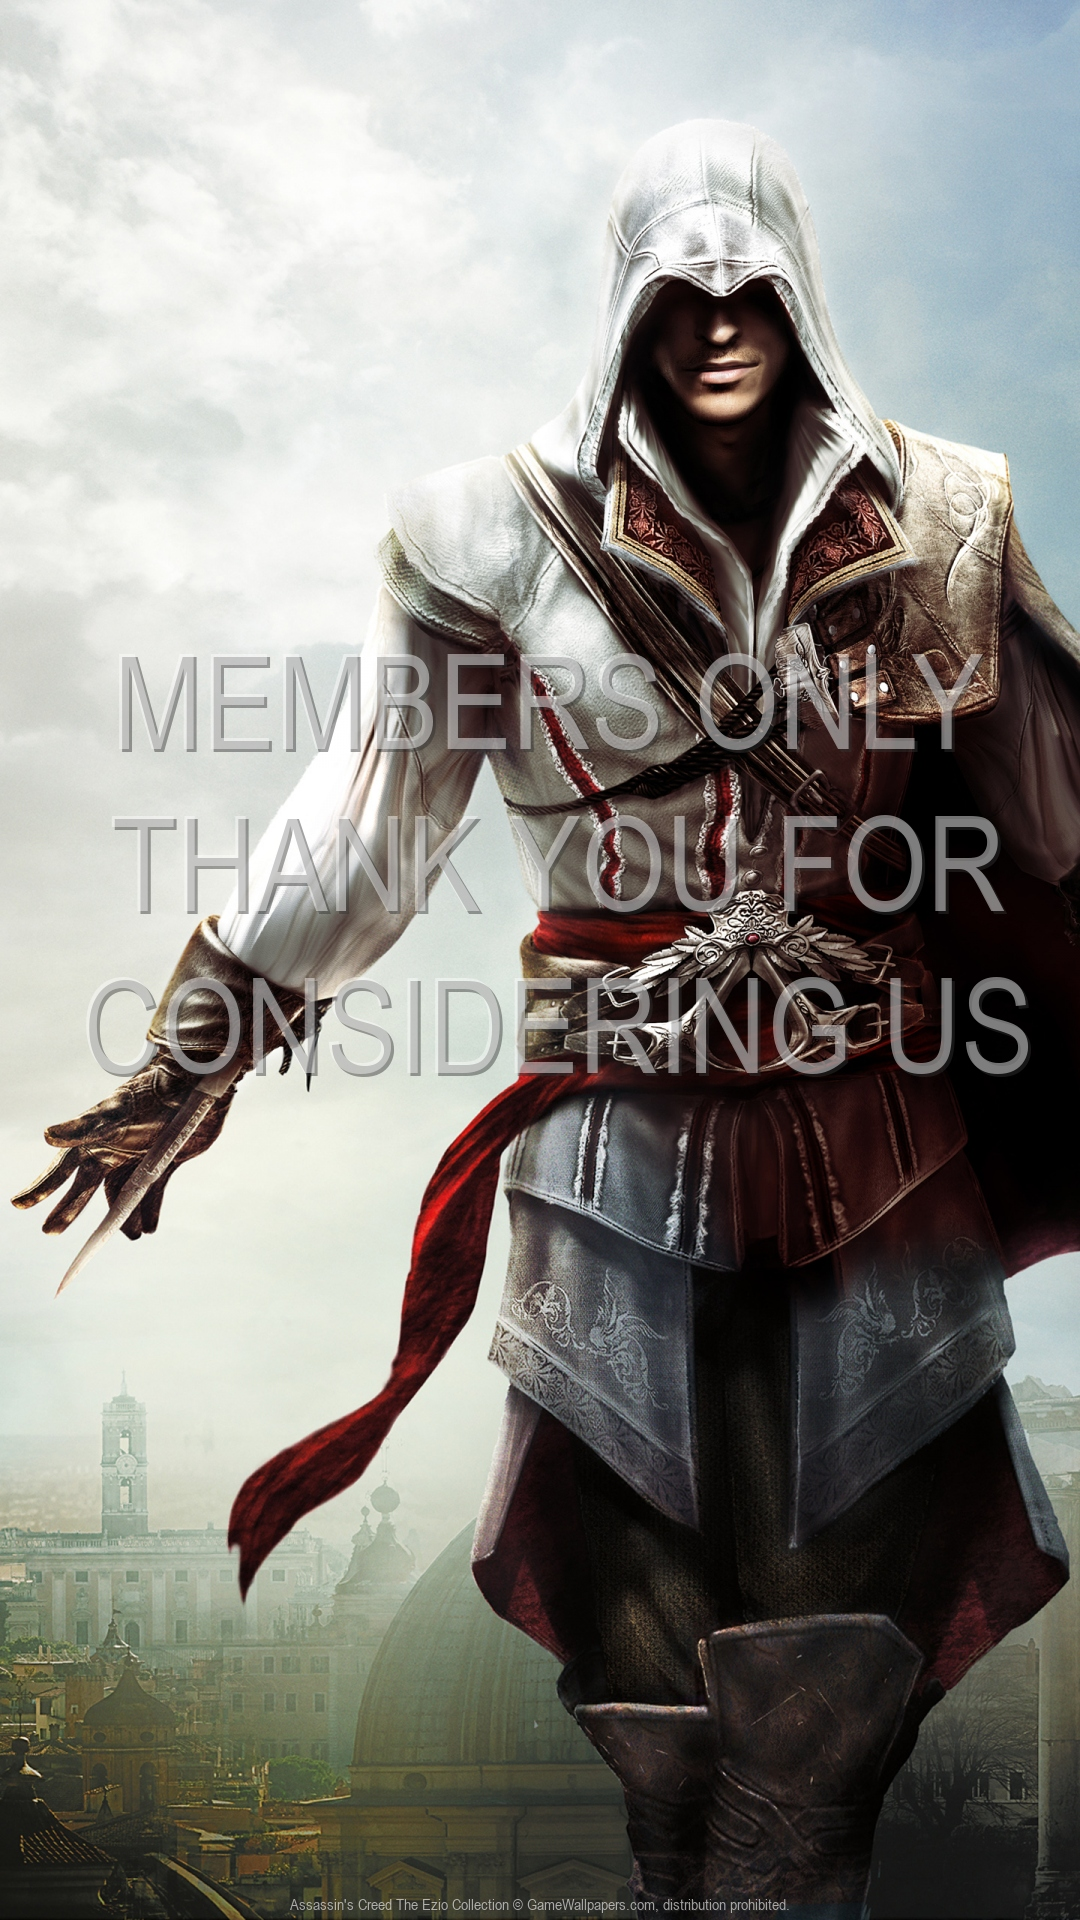 Assassin's Creed: The Ezio Collection 1920x1080 Mobiele achtergrond 01